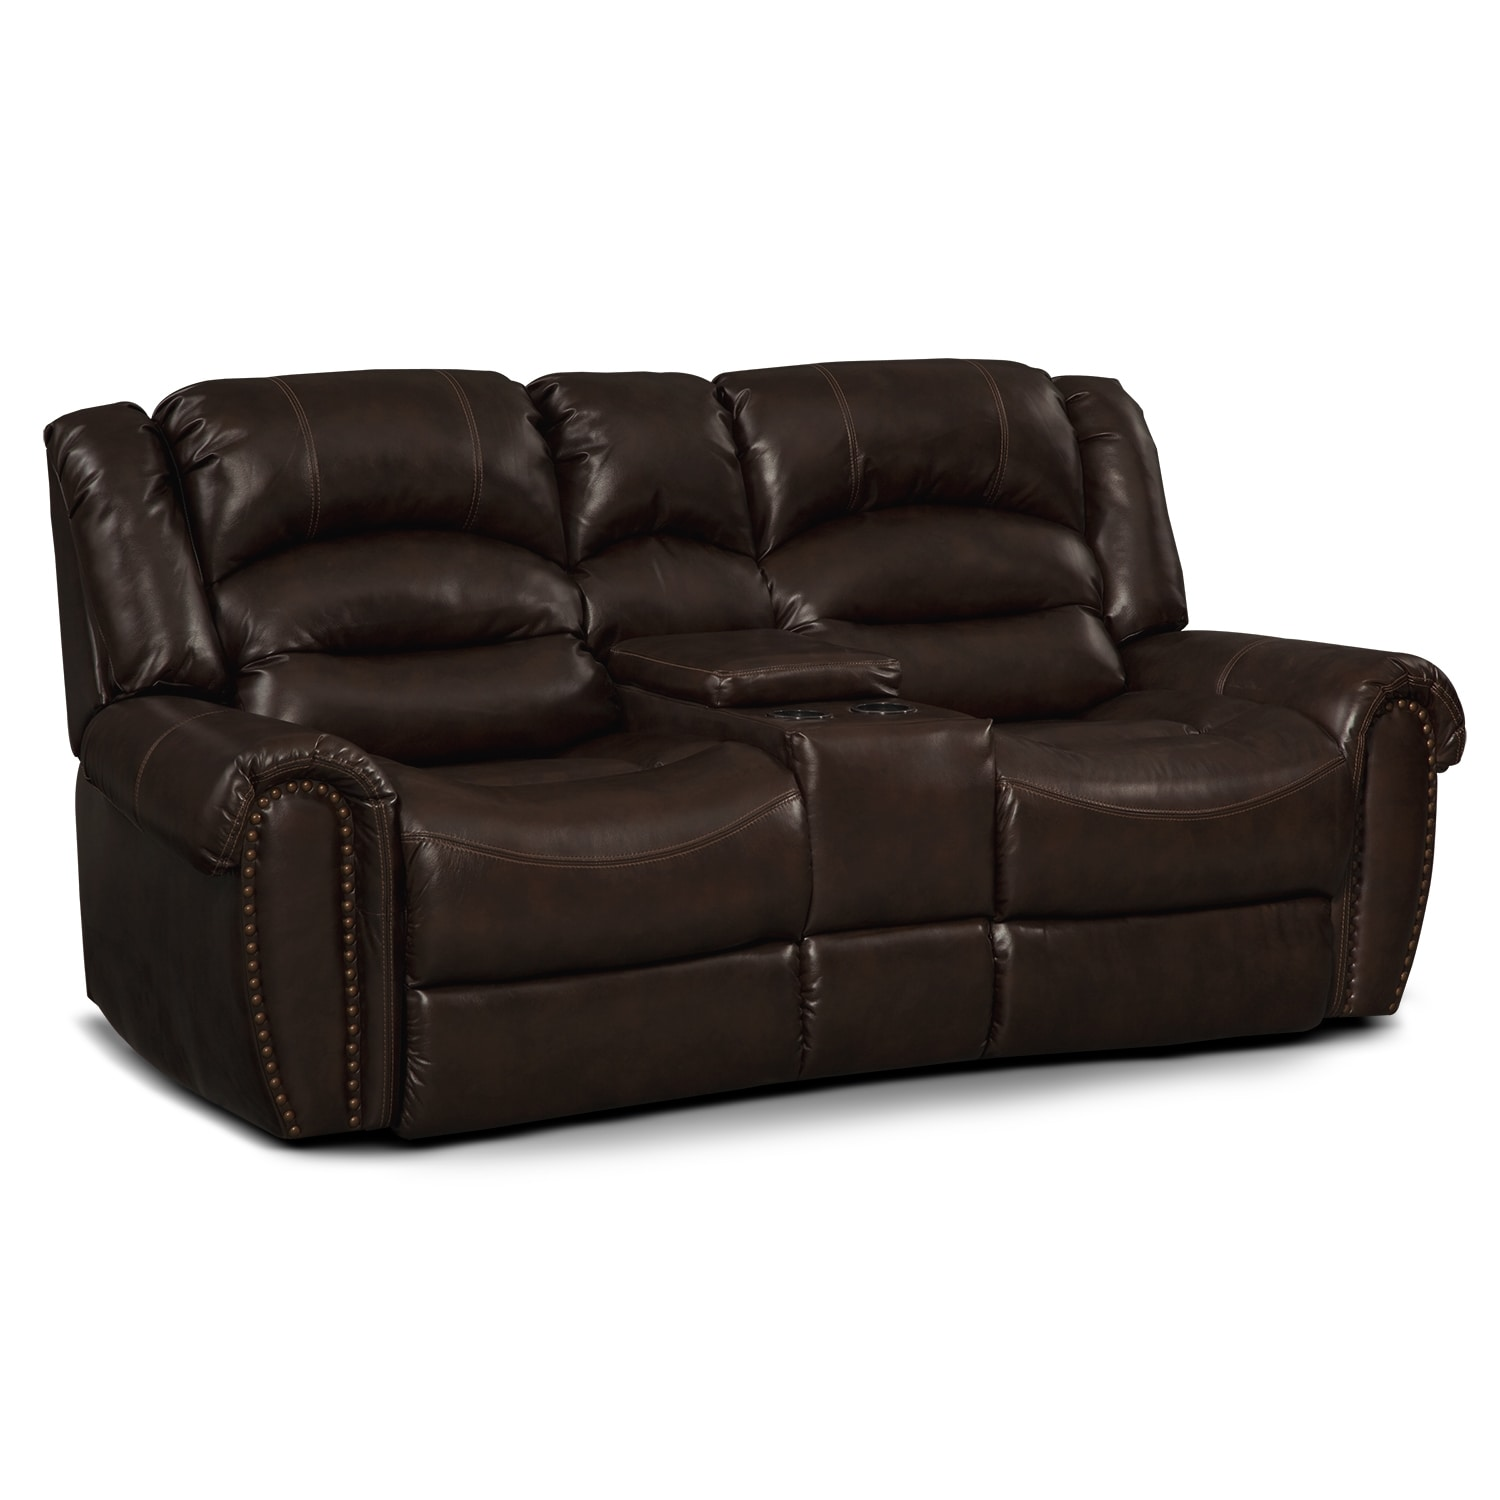 Galveston Leather Dual Reclining Loveseat Value City Furniture